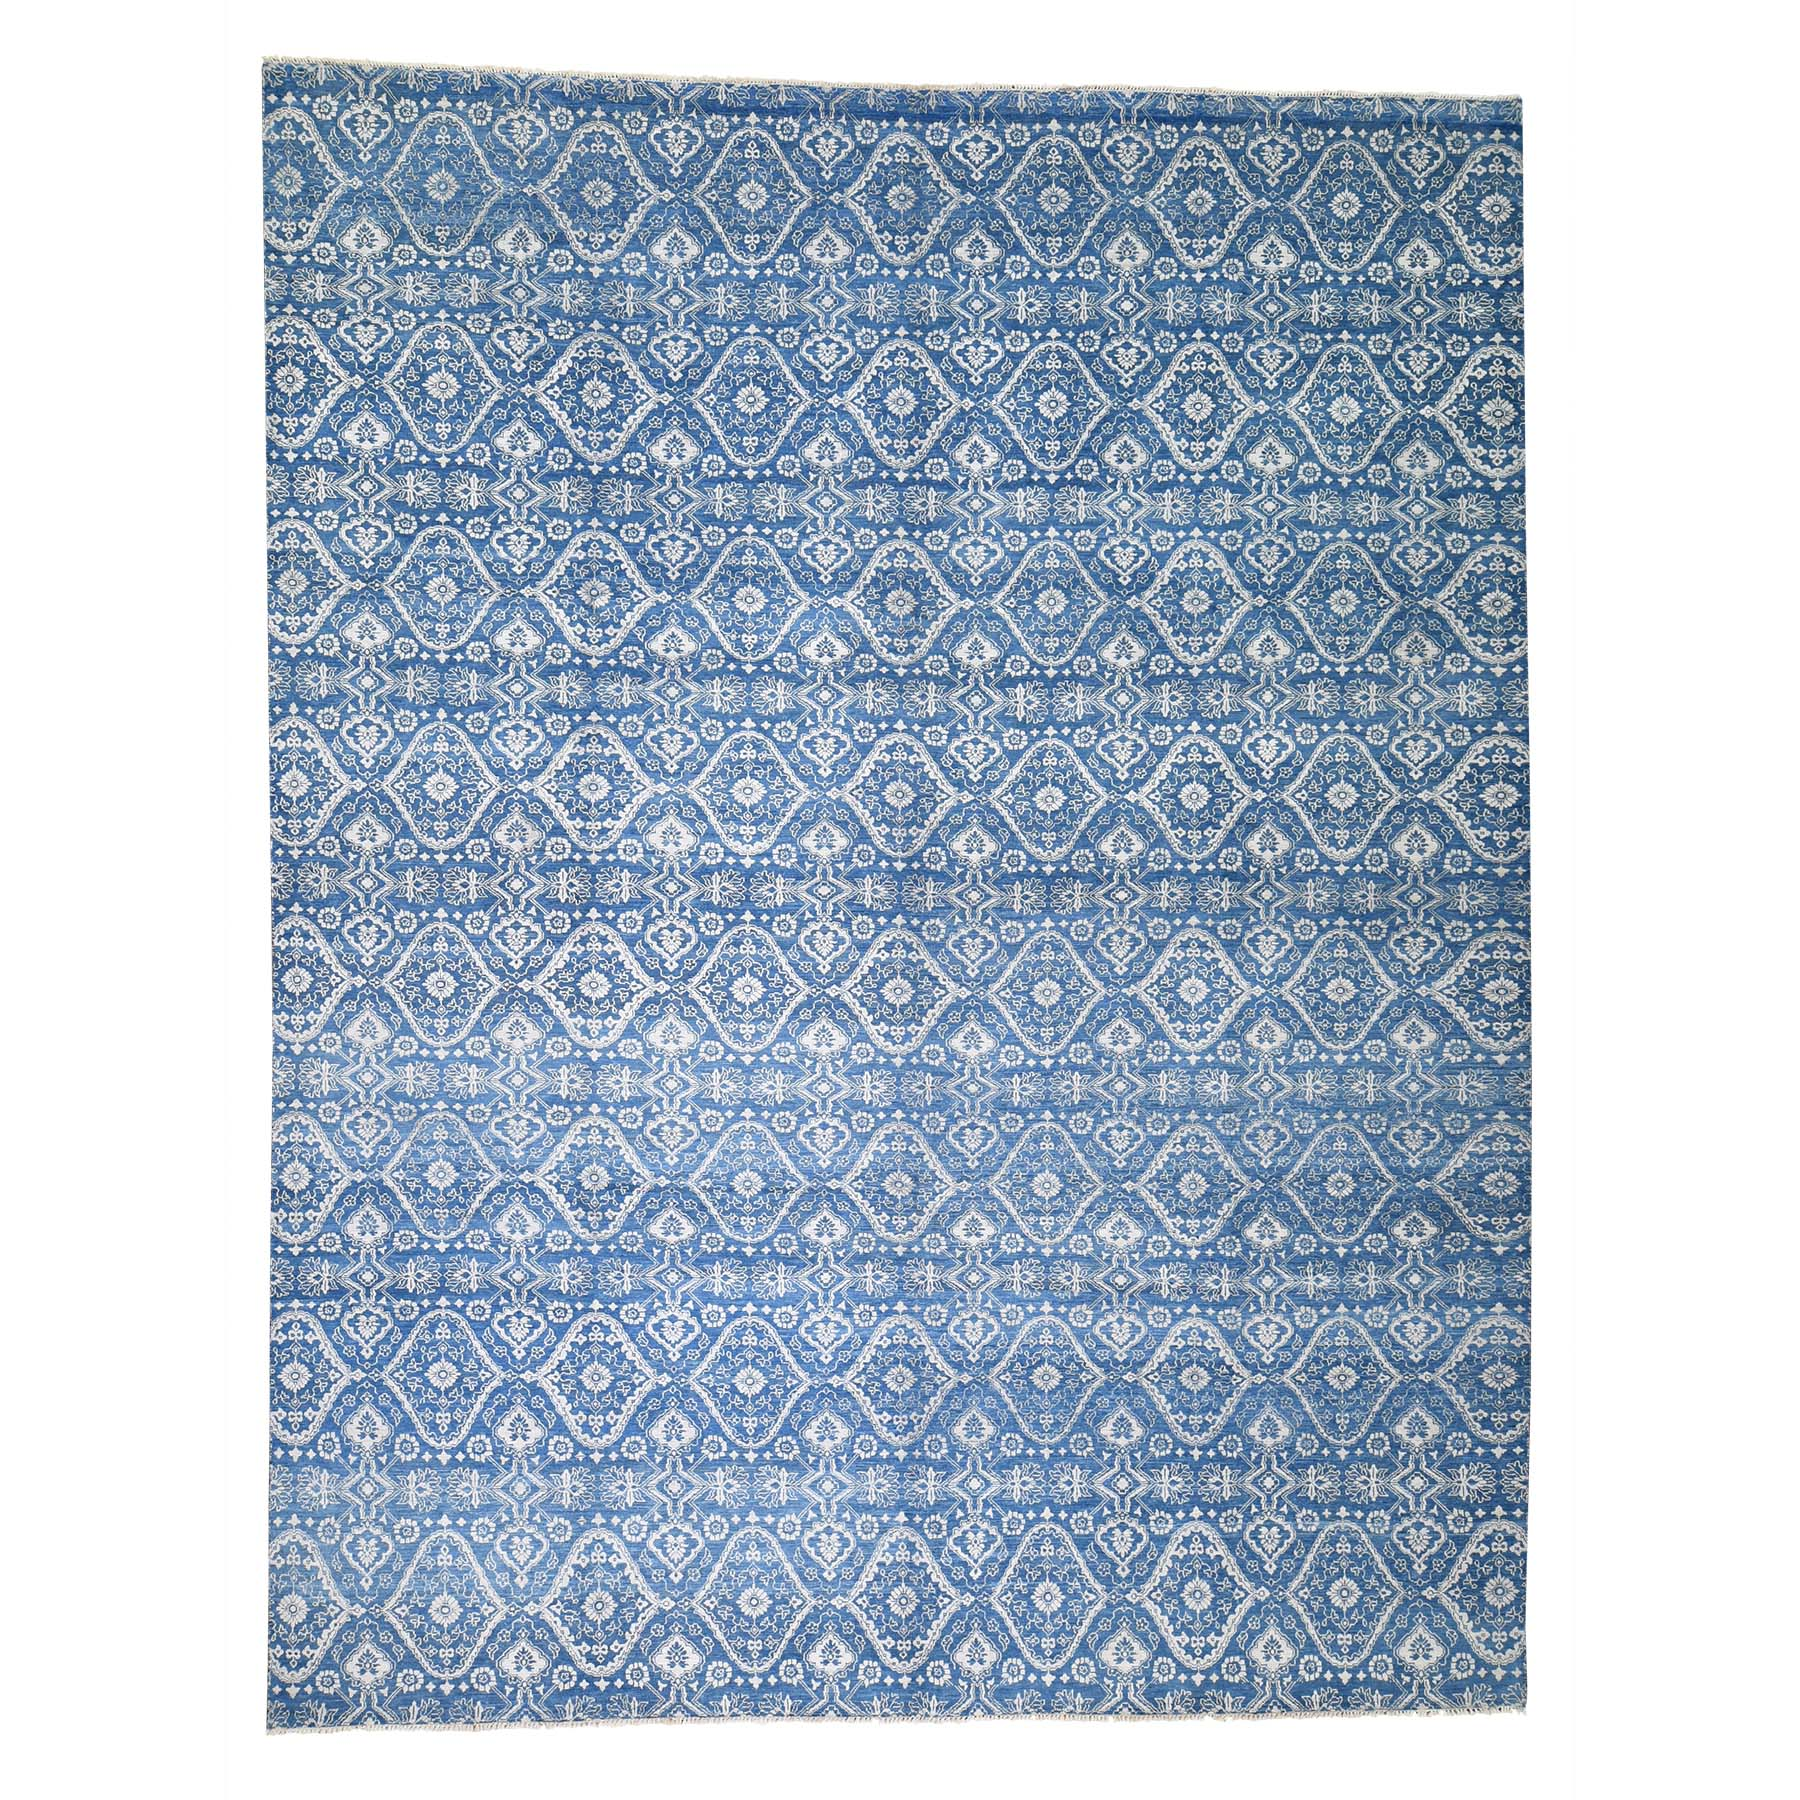 10'x13' Ikat Dense Weave Wool and Silk Tone on Tone Hand Woven Oriental Rug